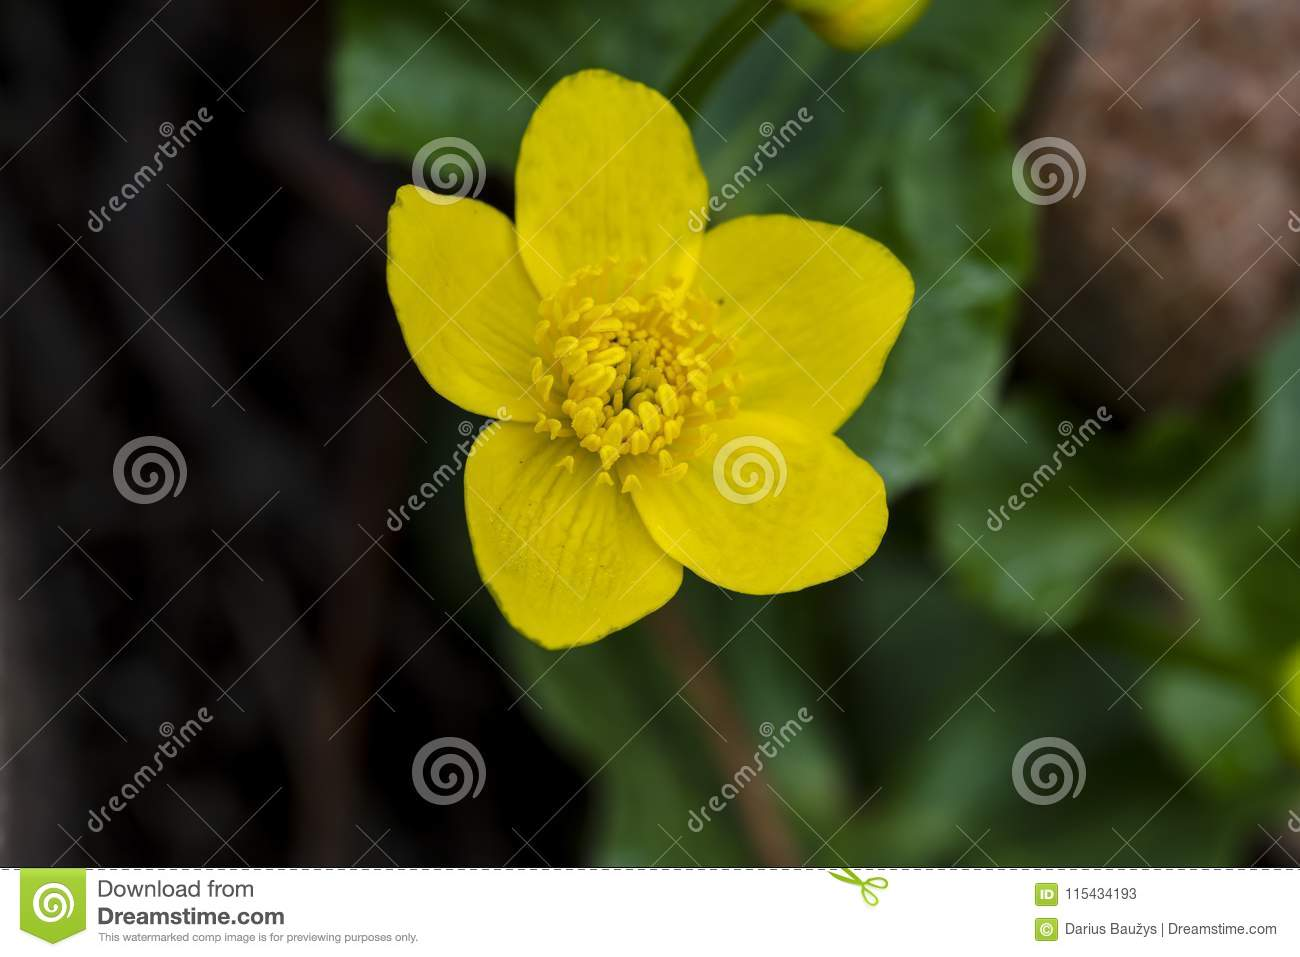 Kingcup, also known as marsh marigold